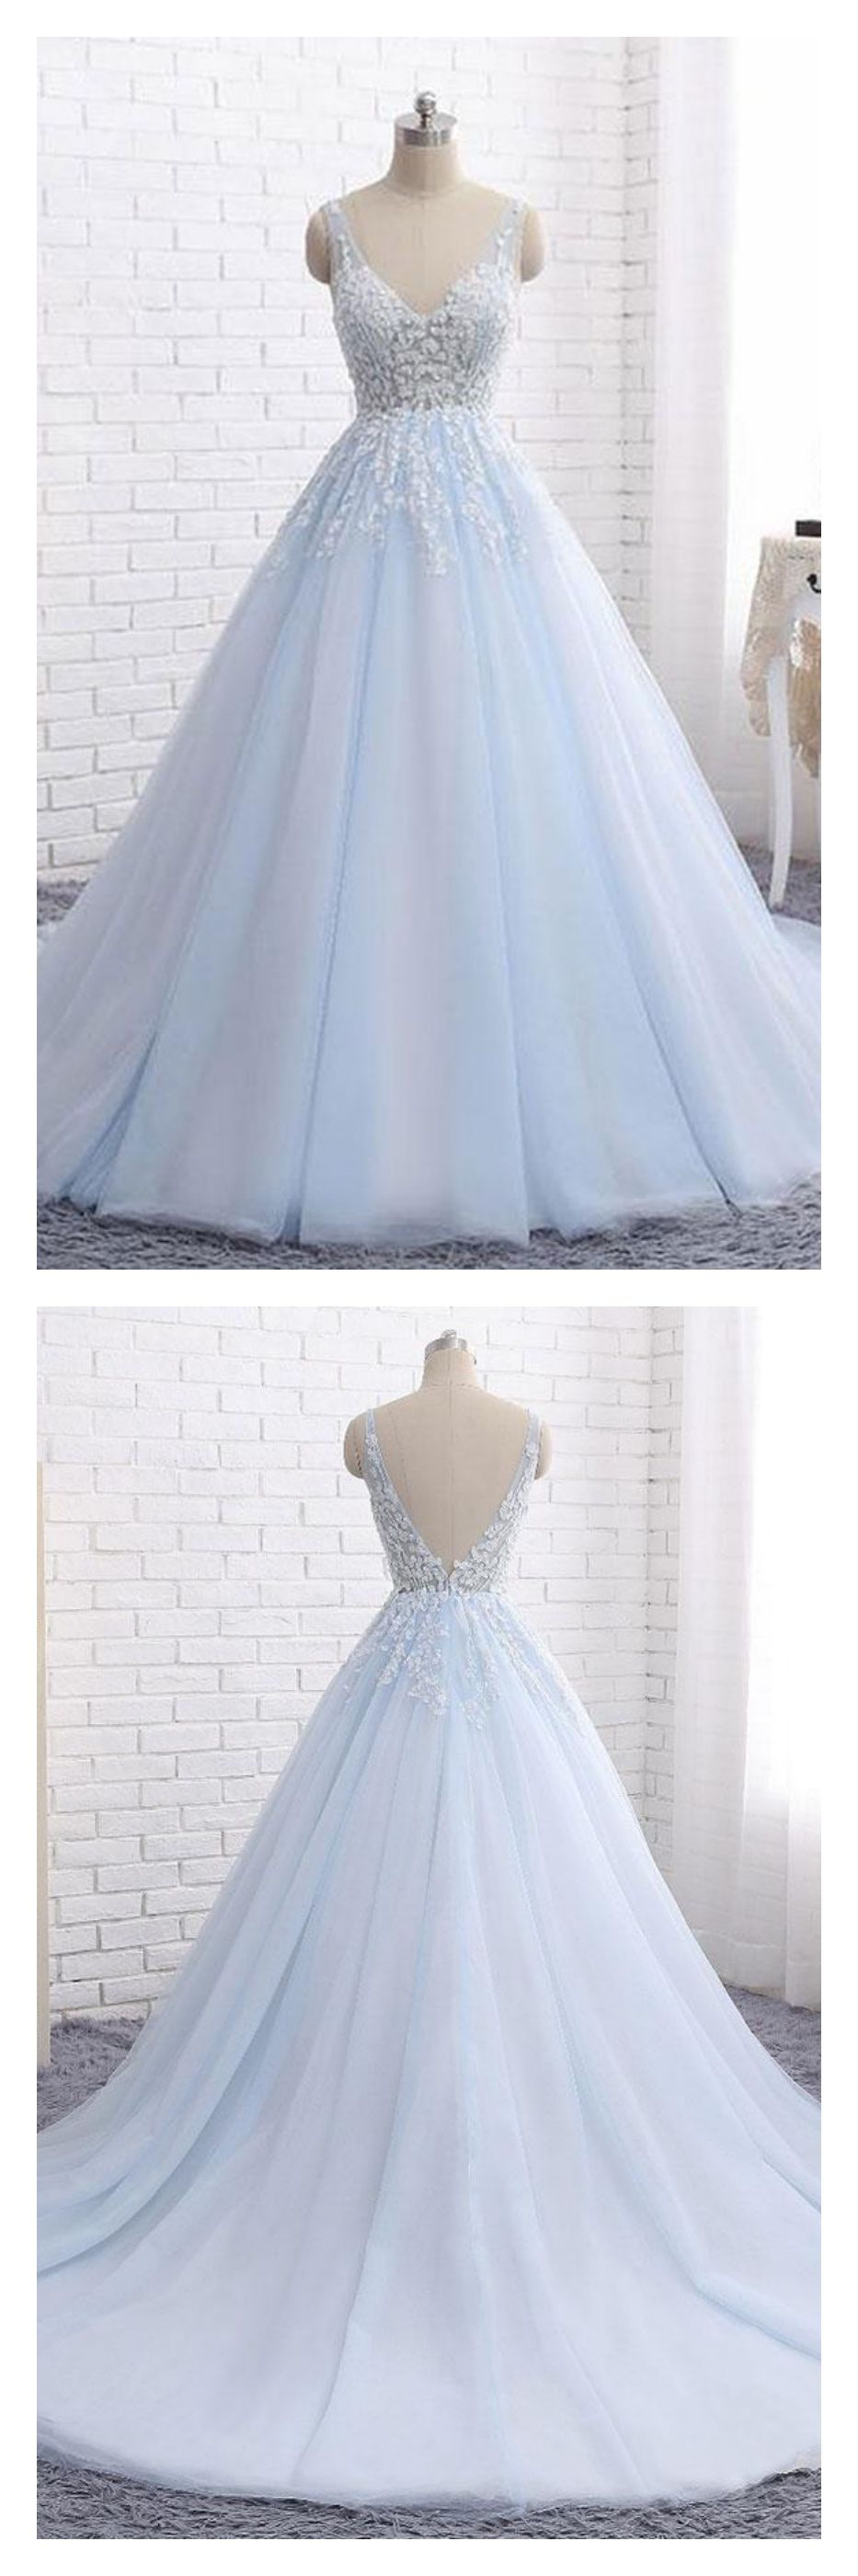 Vneck applique long tulle prom ball gownhs from simi bridal